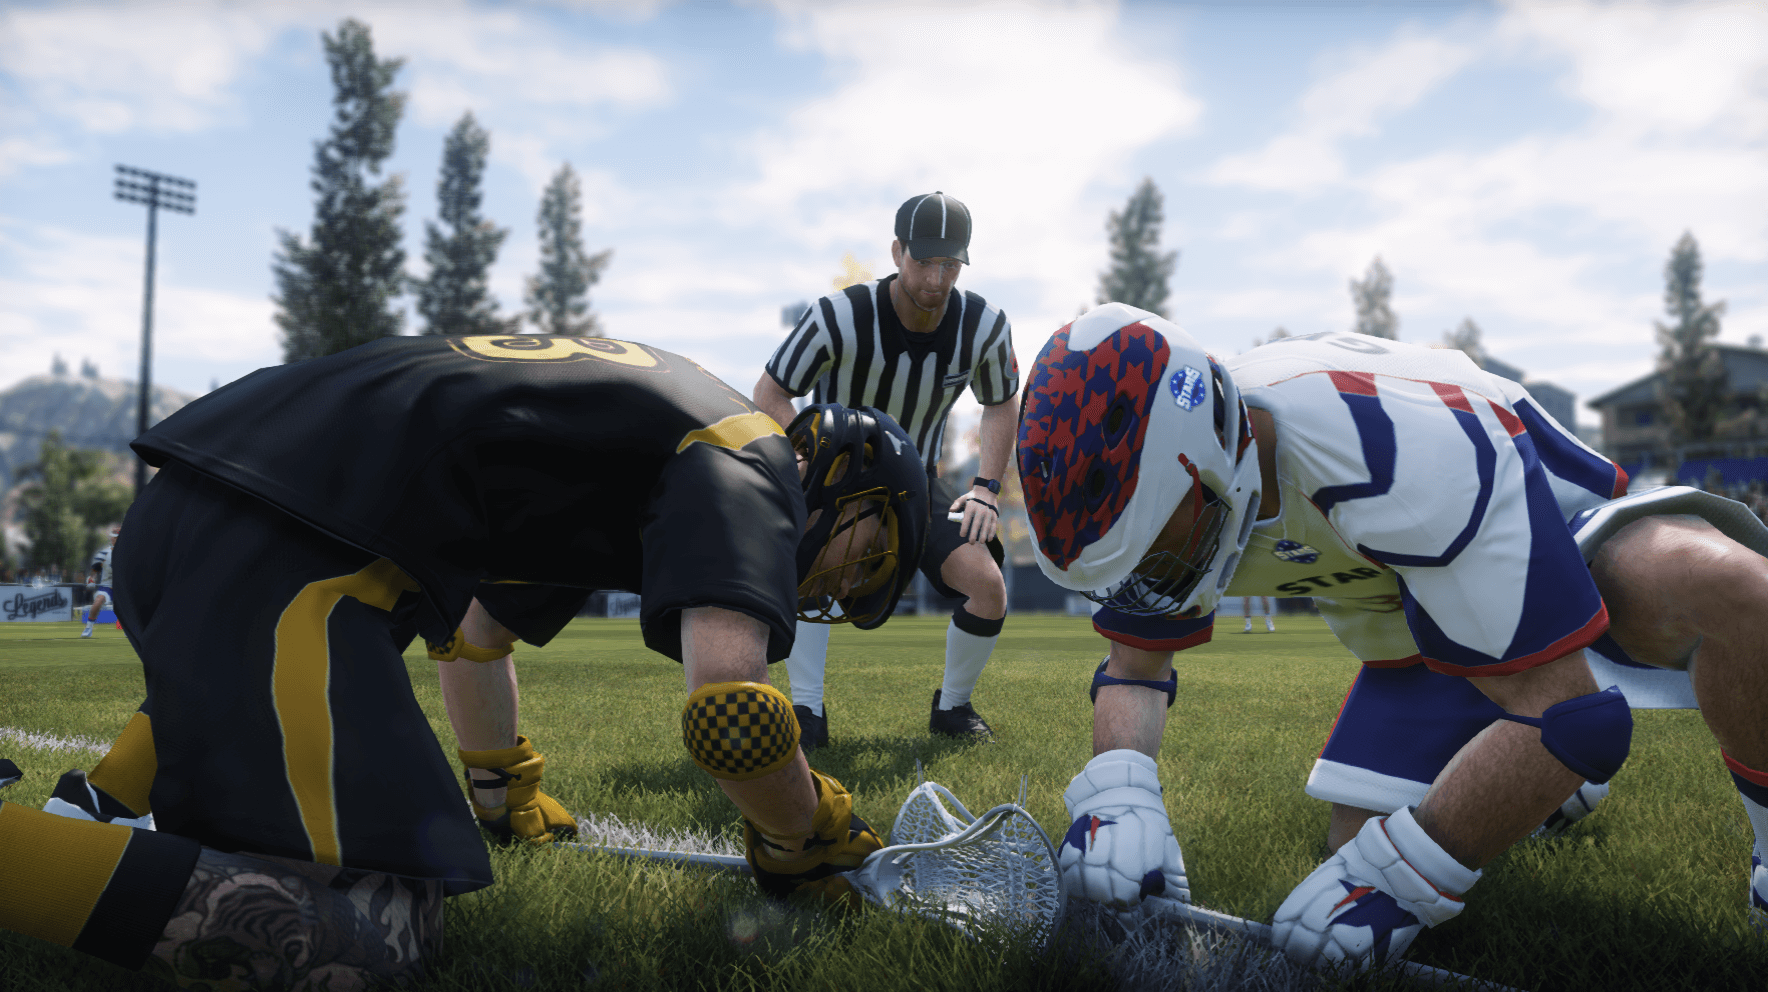 lacrosse-video-game-casey-powell